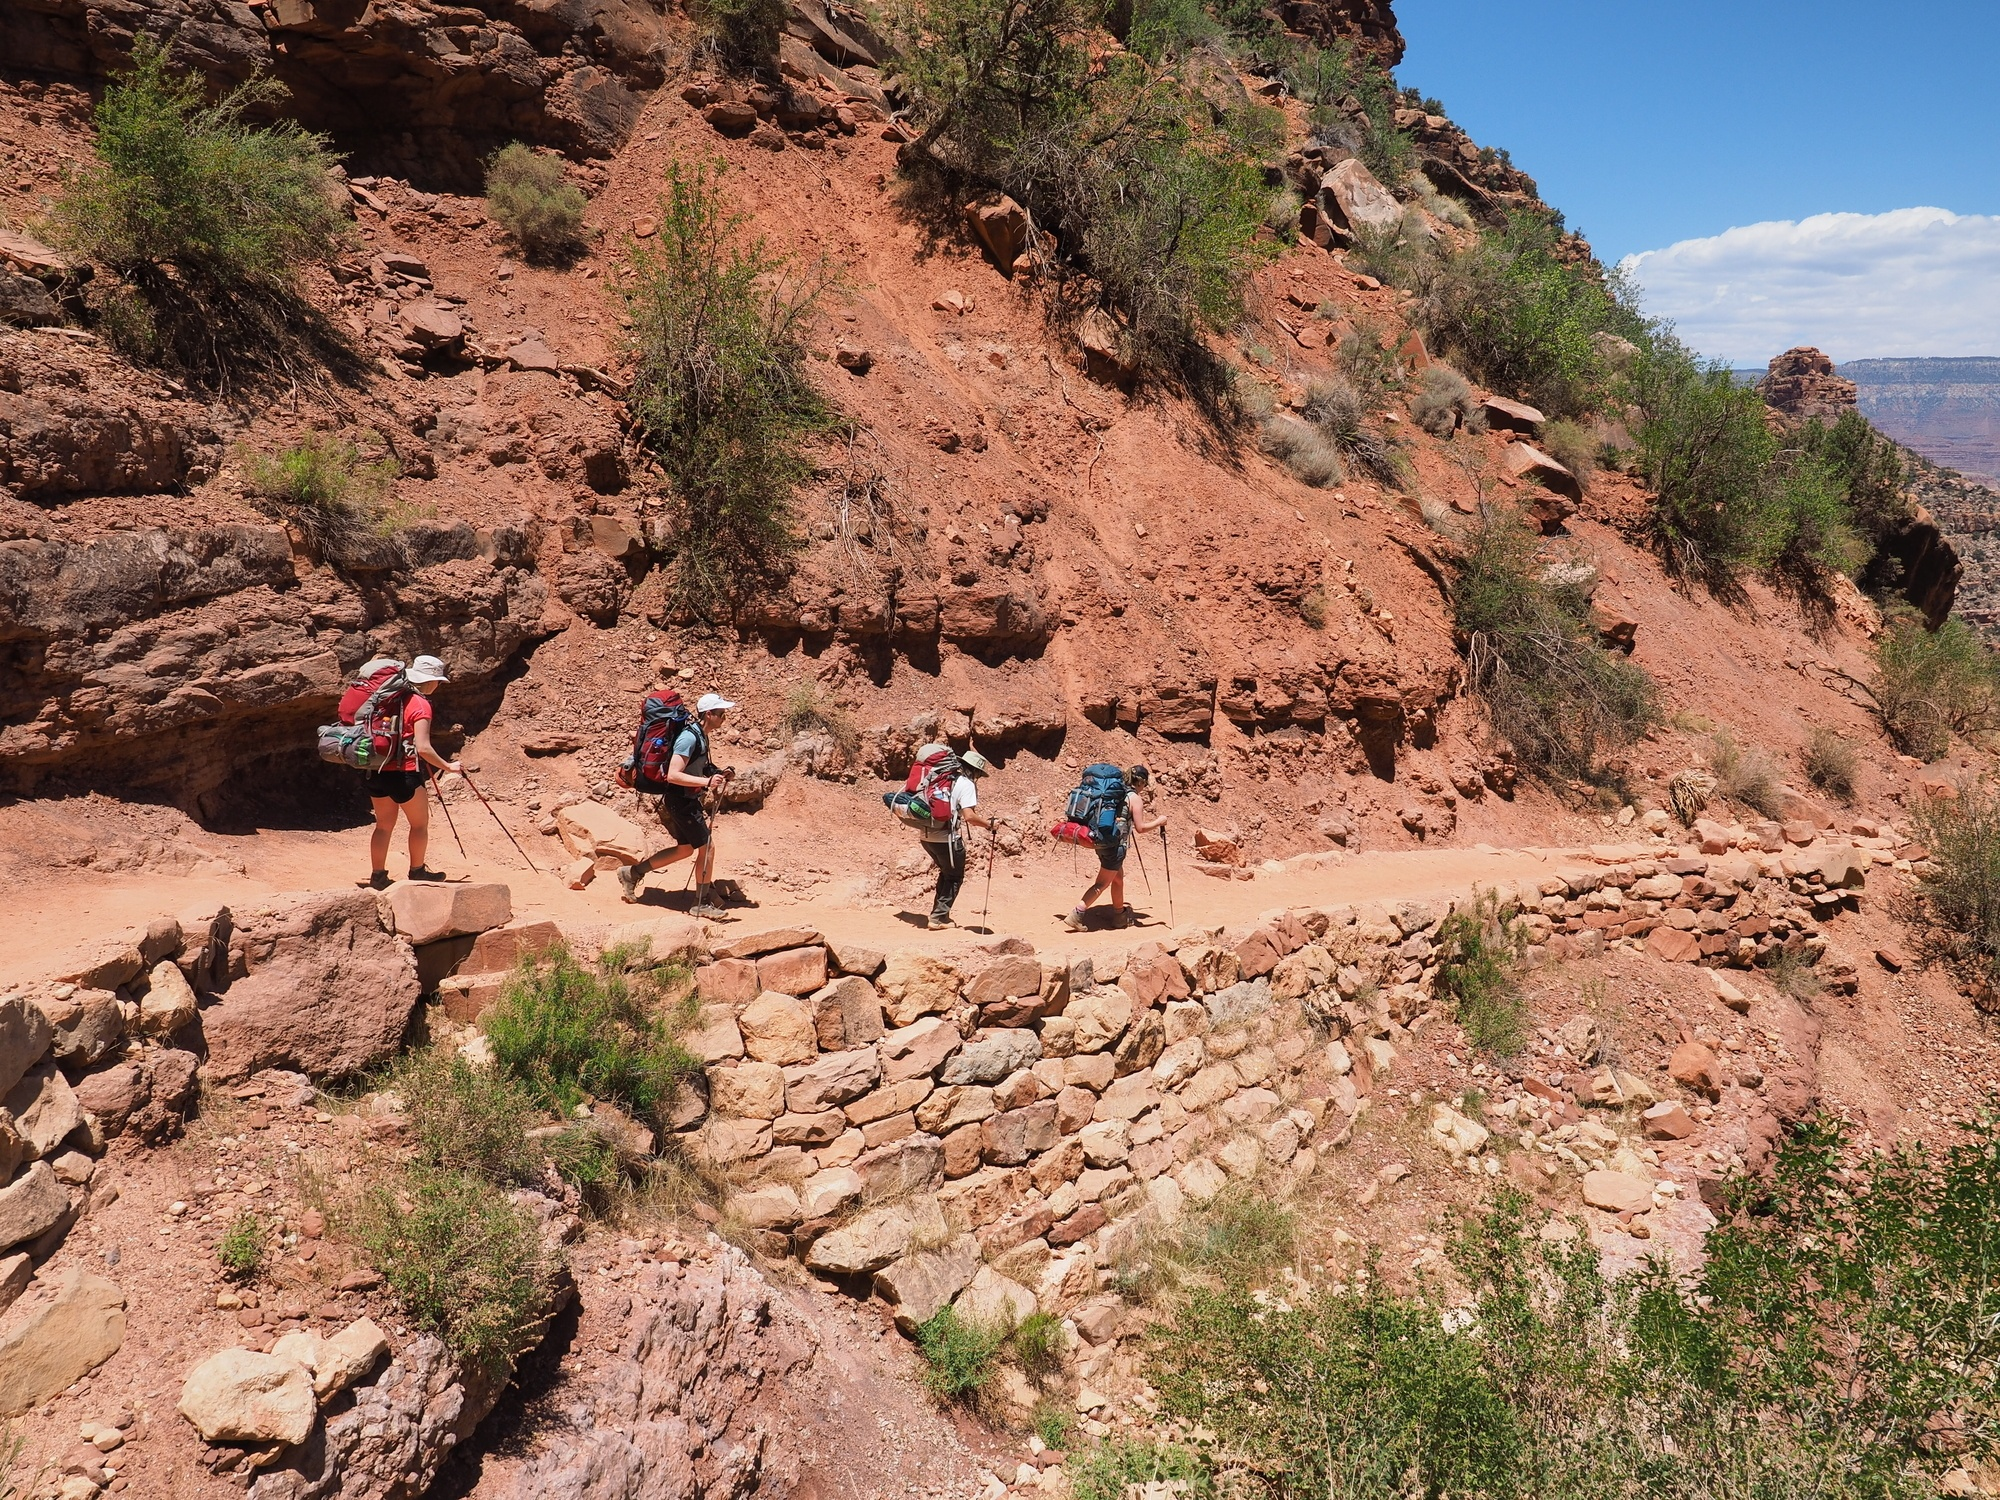 Hikers on the Bright Angel Trail in the Grand Canyon